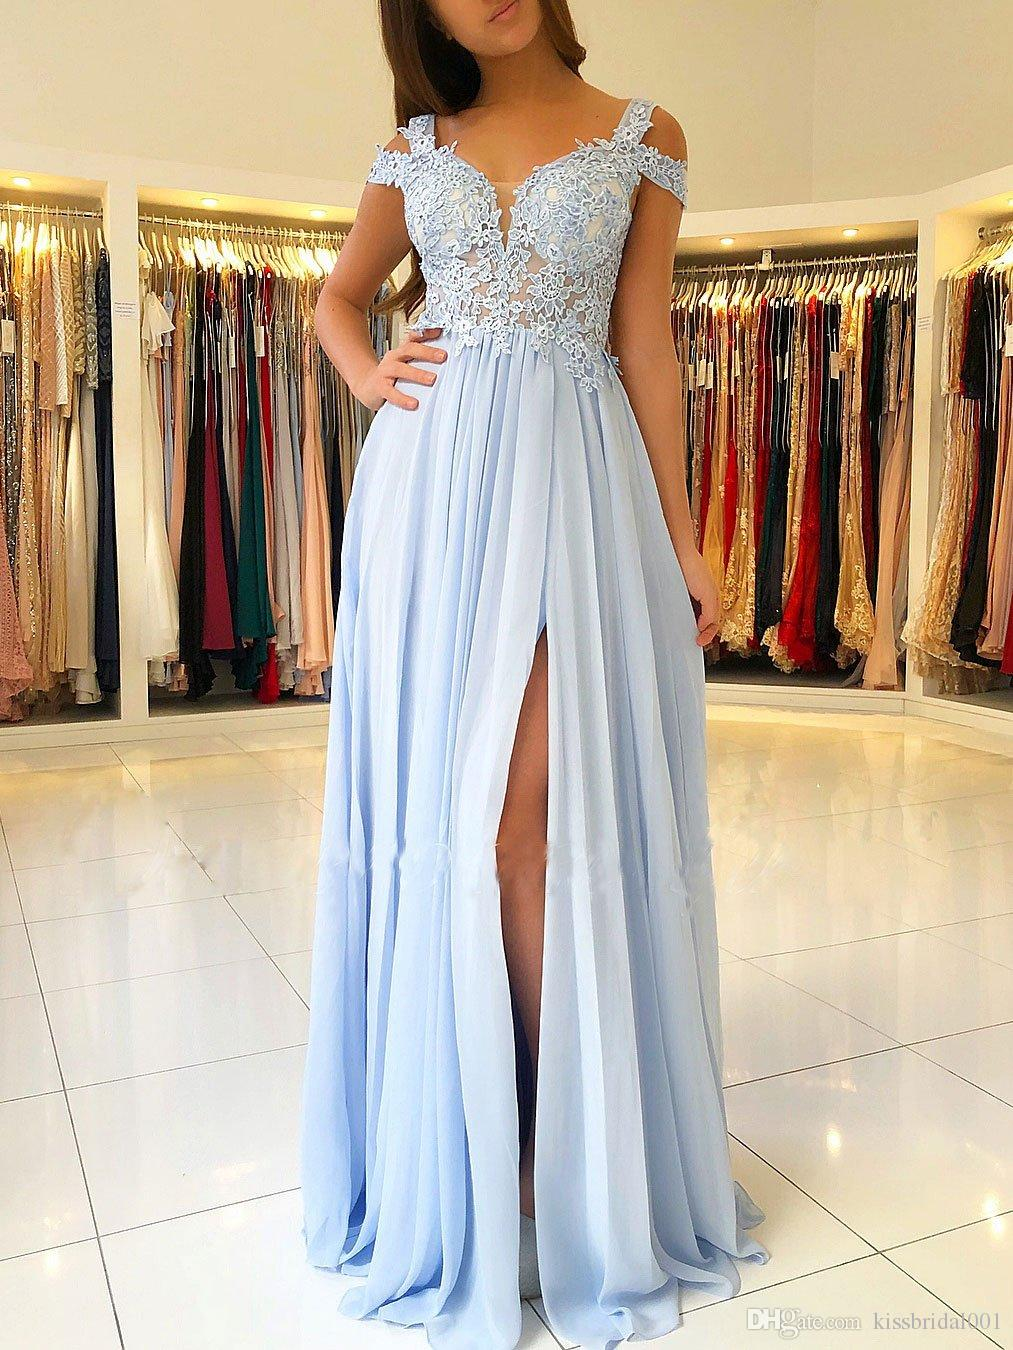 Lavender Lace Prom Dresses Cheap Long Chiffon Split Formal Evening Gowns Off The Shoulder Party Dresses Girls 18